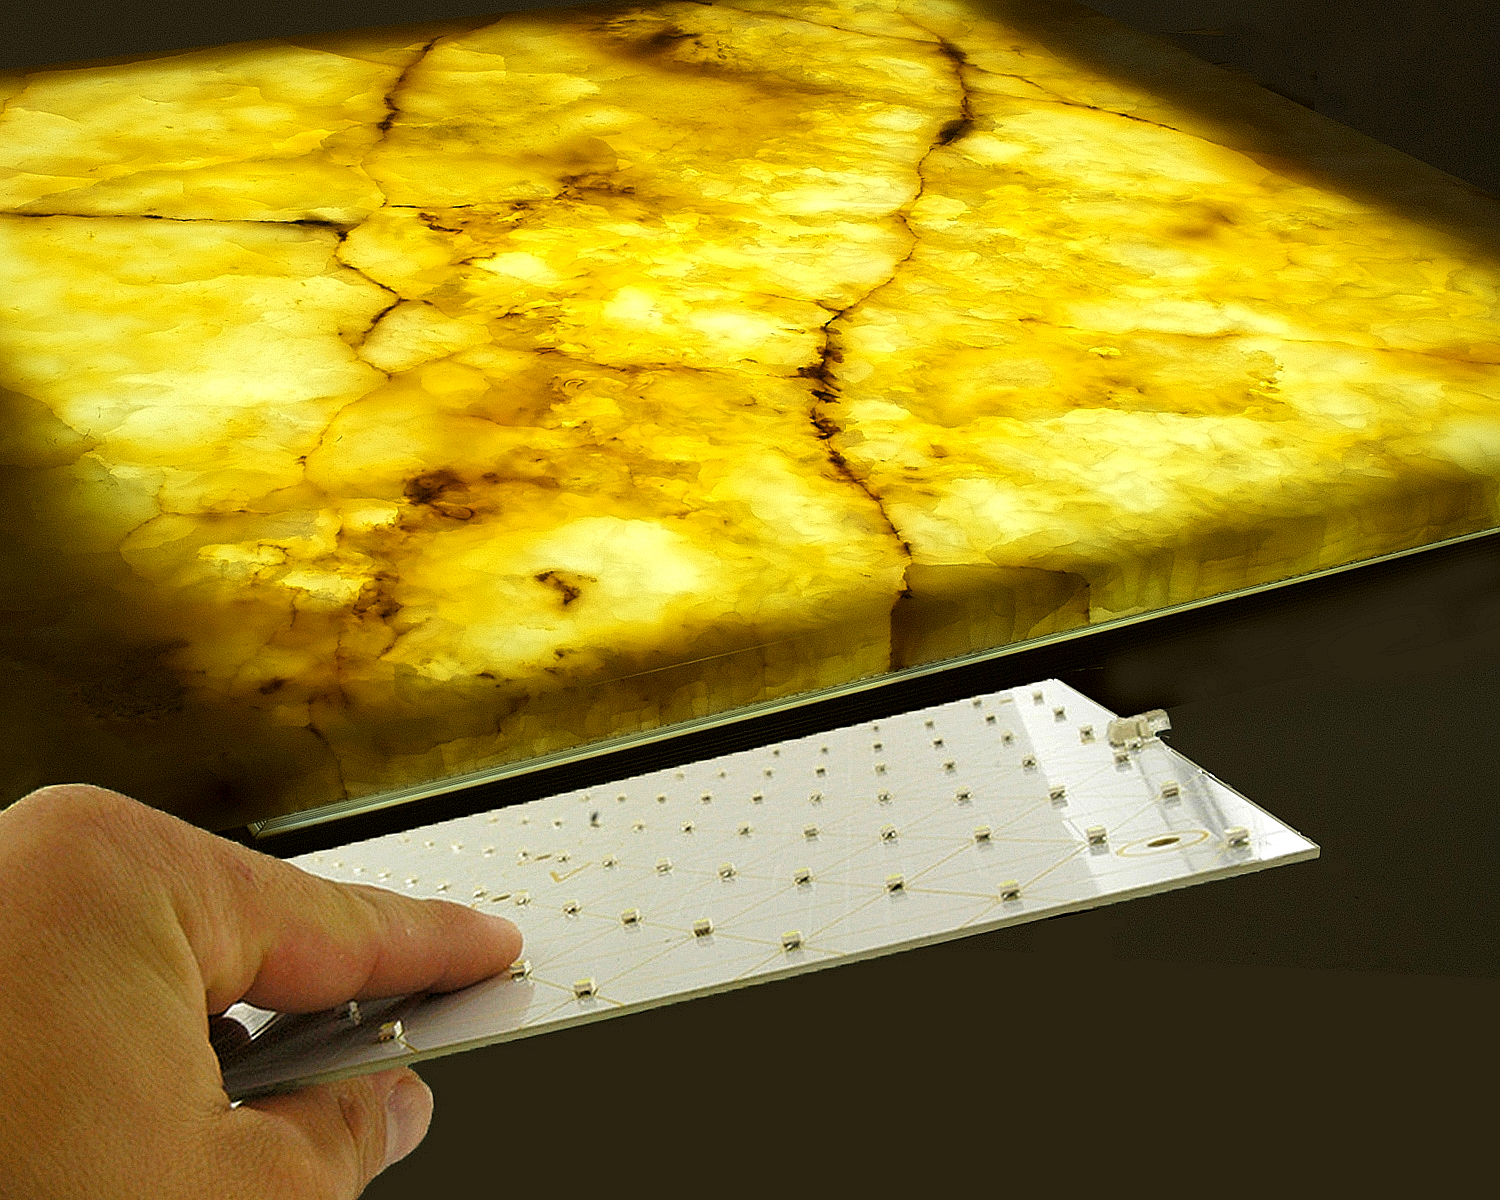 Outwater Introduces Its Tri-Mod LED Backlighting Panels for Translucent Surfaces